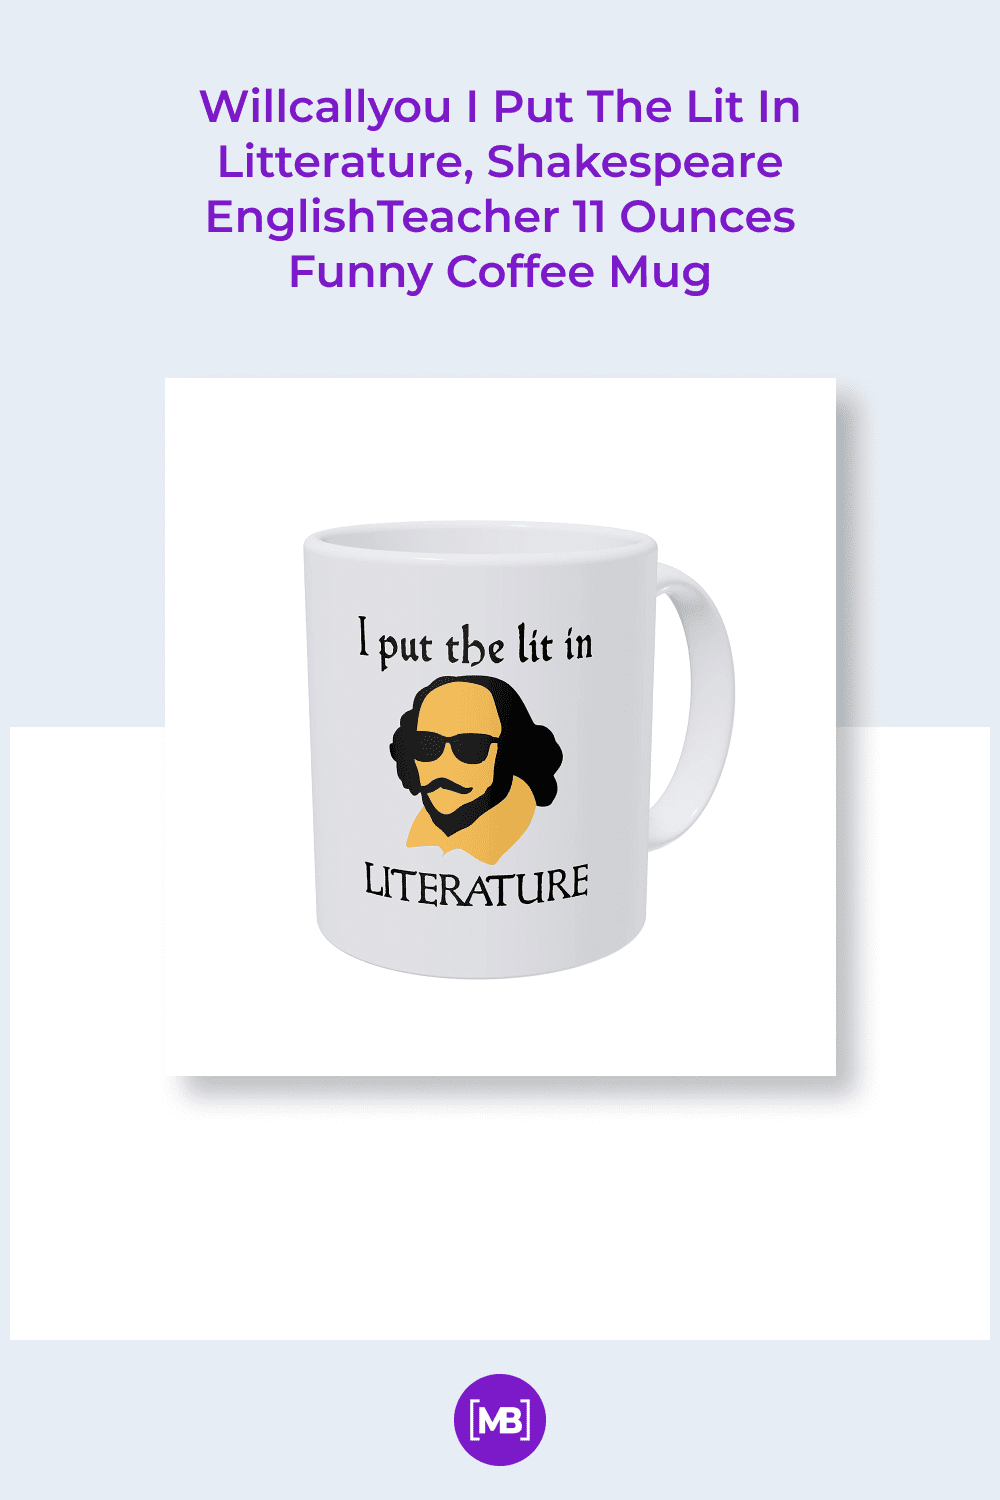 Cool and cheeky mug with lettering and modern illustration.